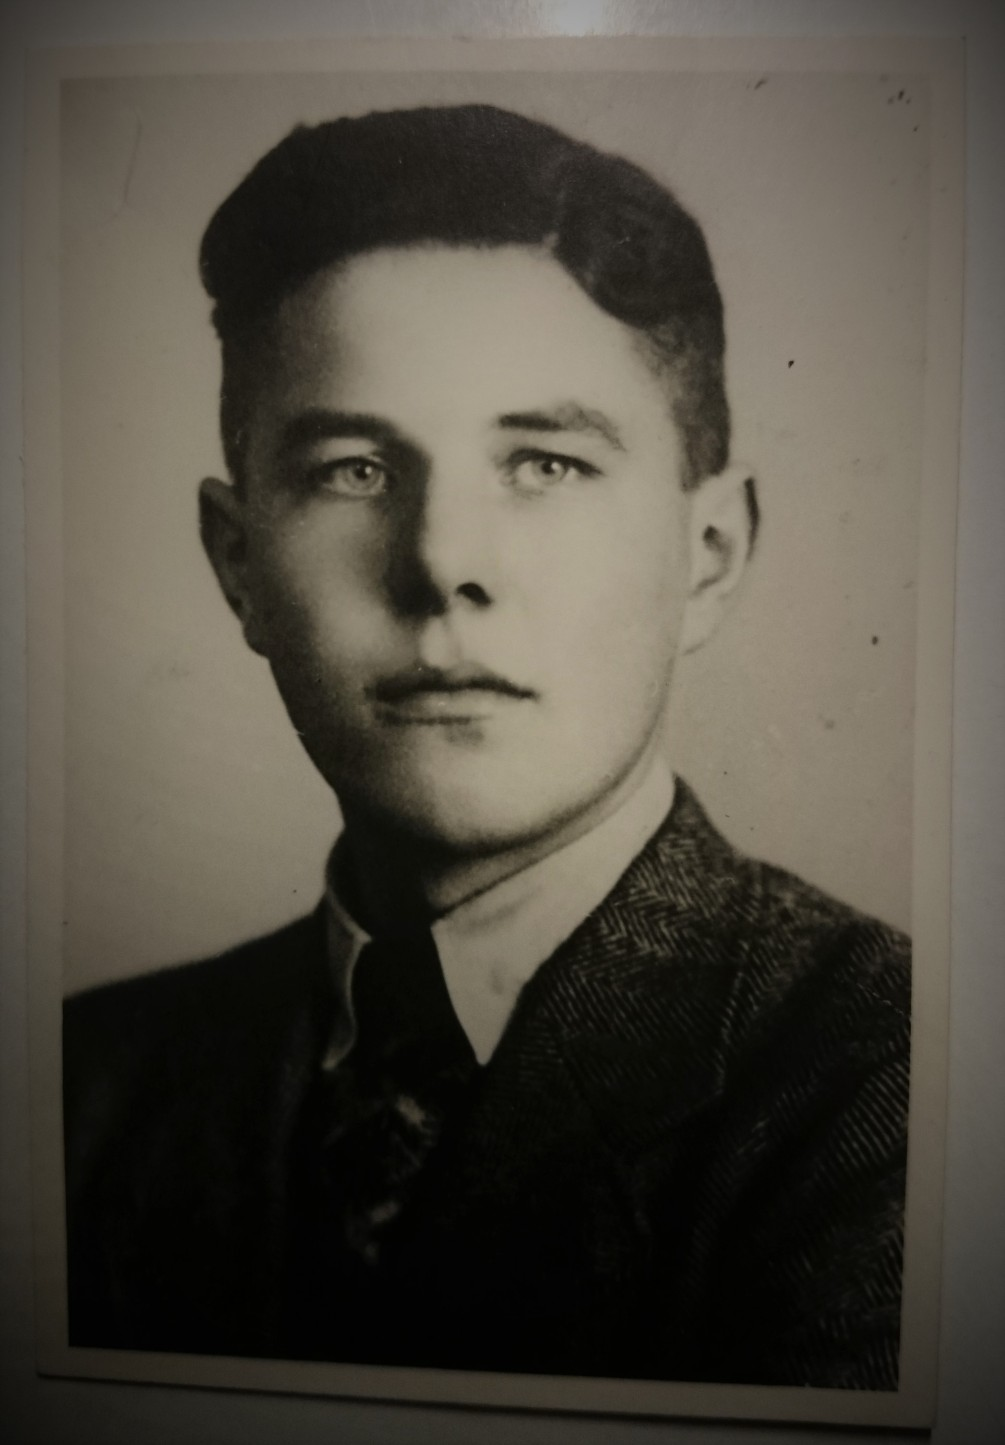 Jan van Boeckel 1943, just before he left on his journey from Holland to Bavaria. From which he never returned